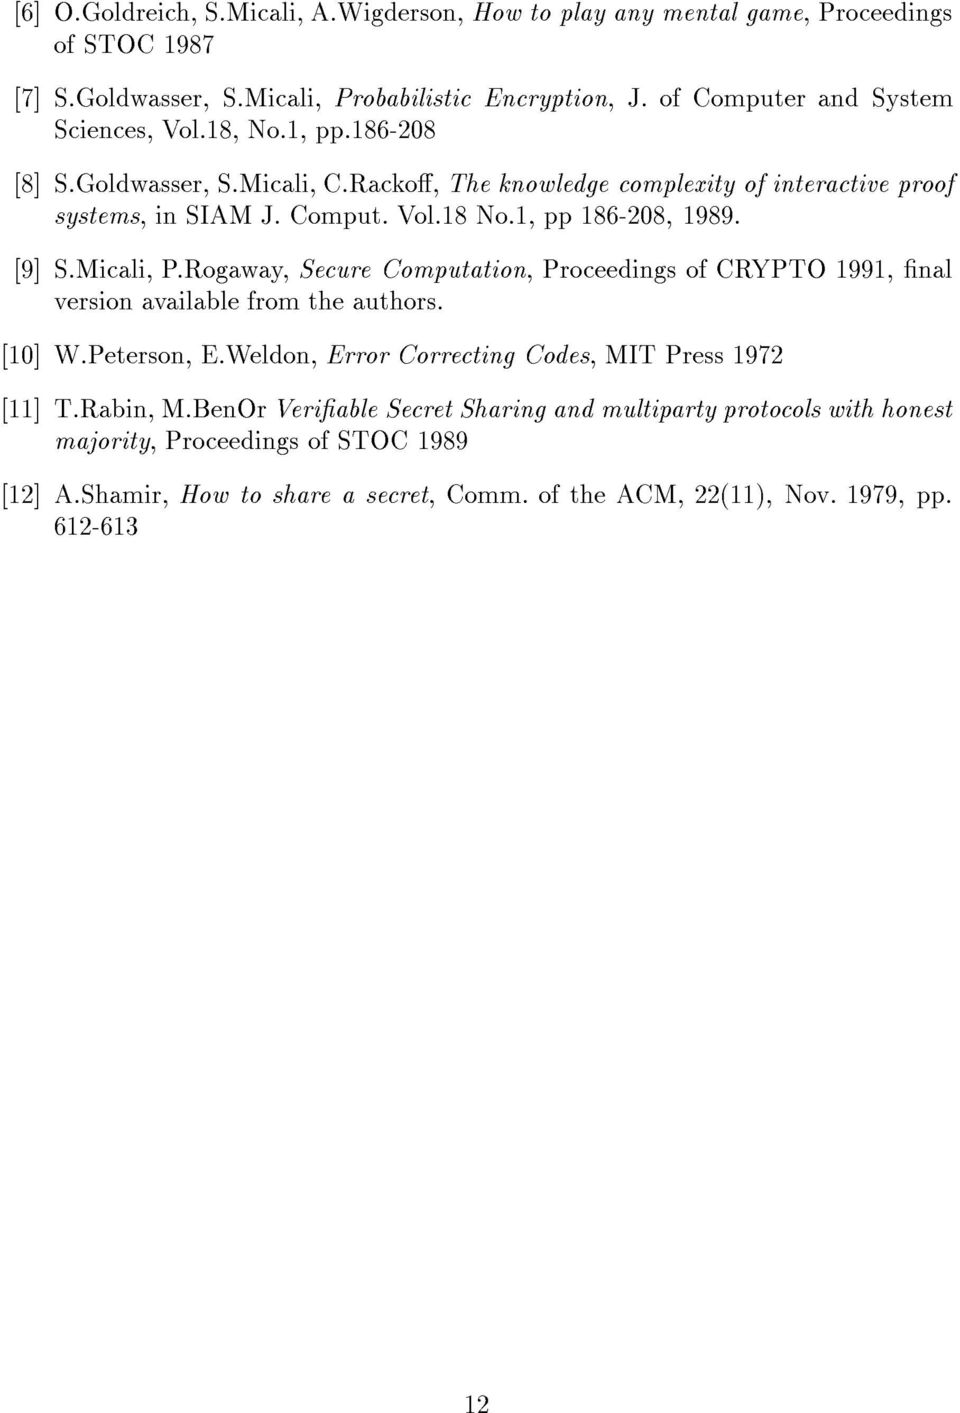 1, pp 186-208, 1989. [9] S.Micali, P.Rogaway, Secure Computation, Proceedings of CRYPTO 1991, nal version available from the authors. [10] W.Peterson, E.